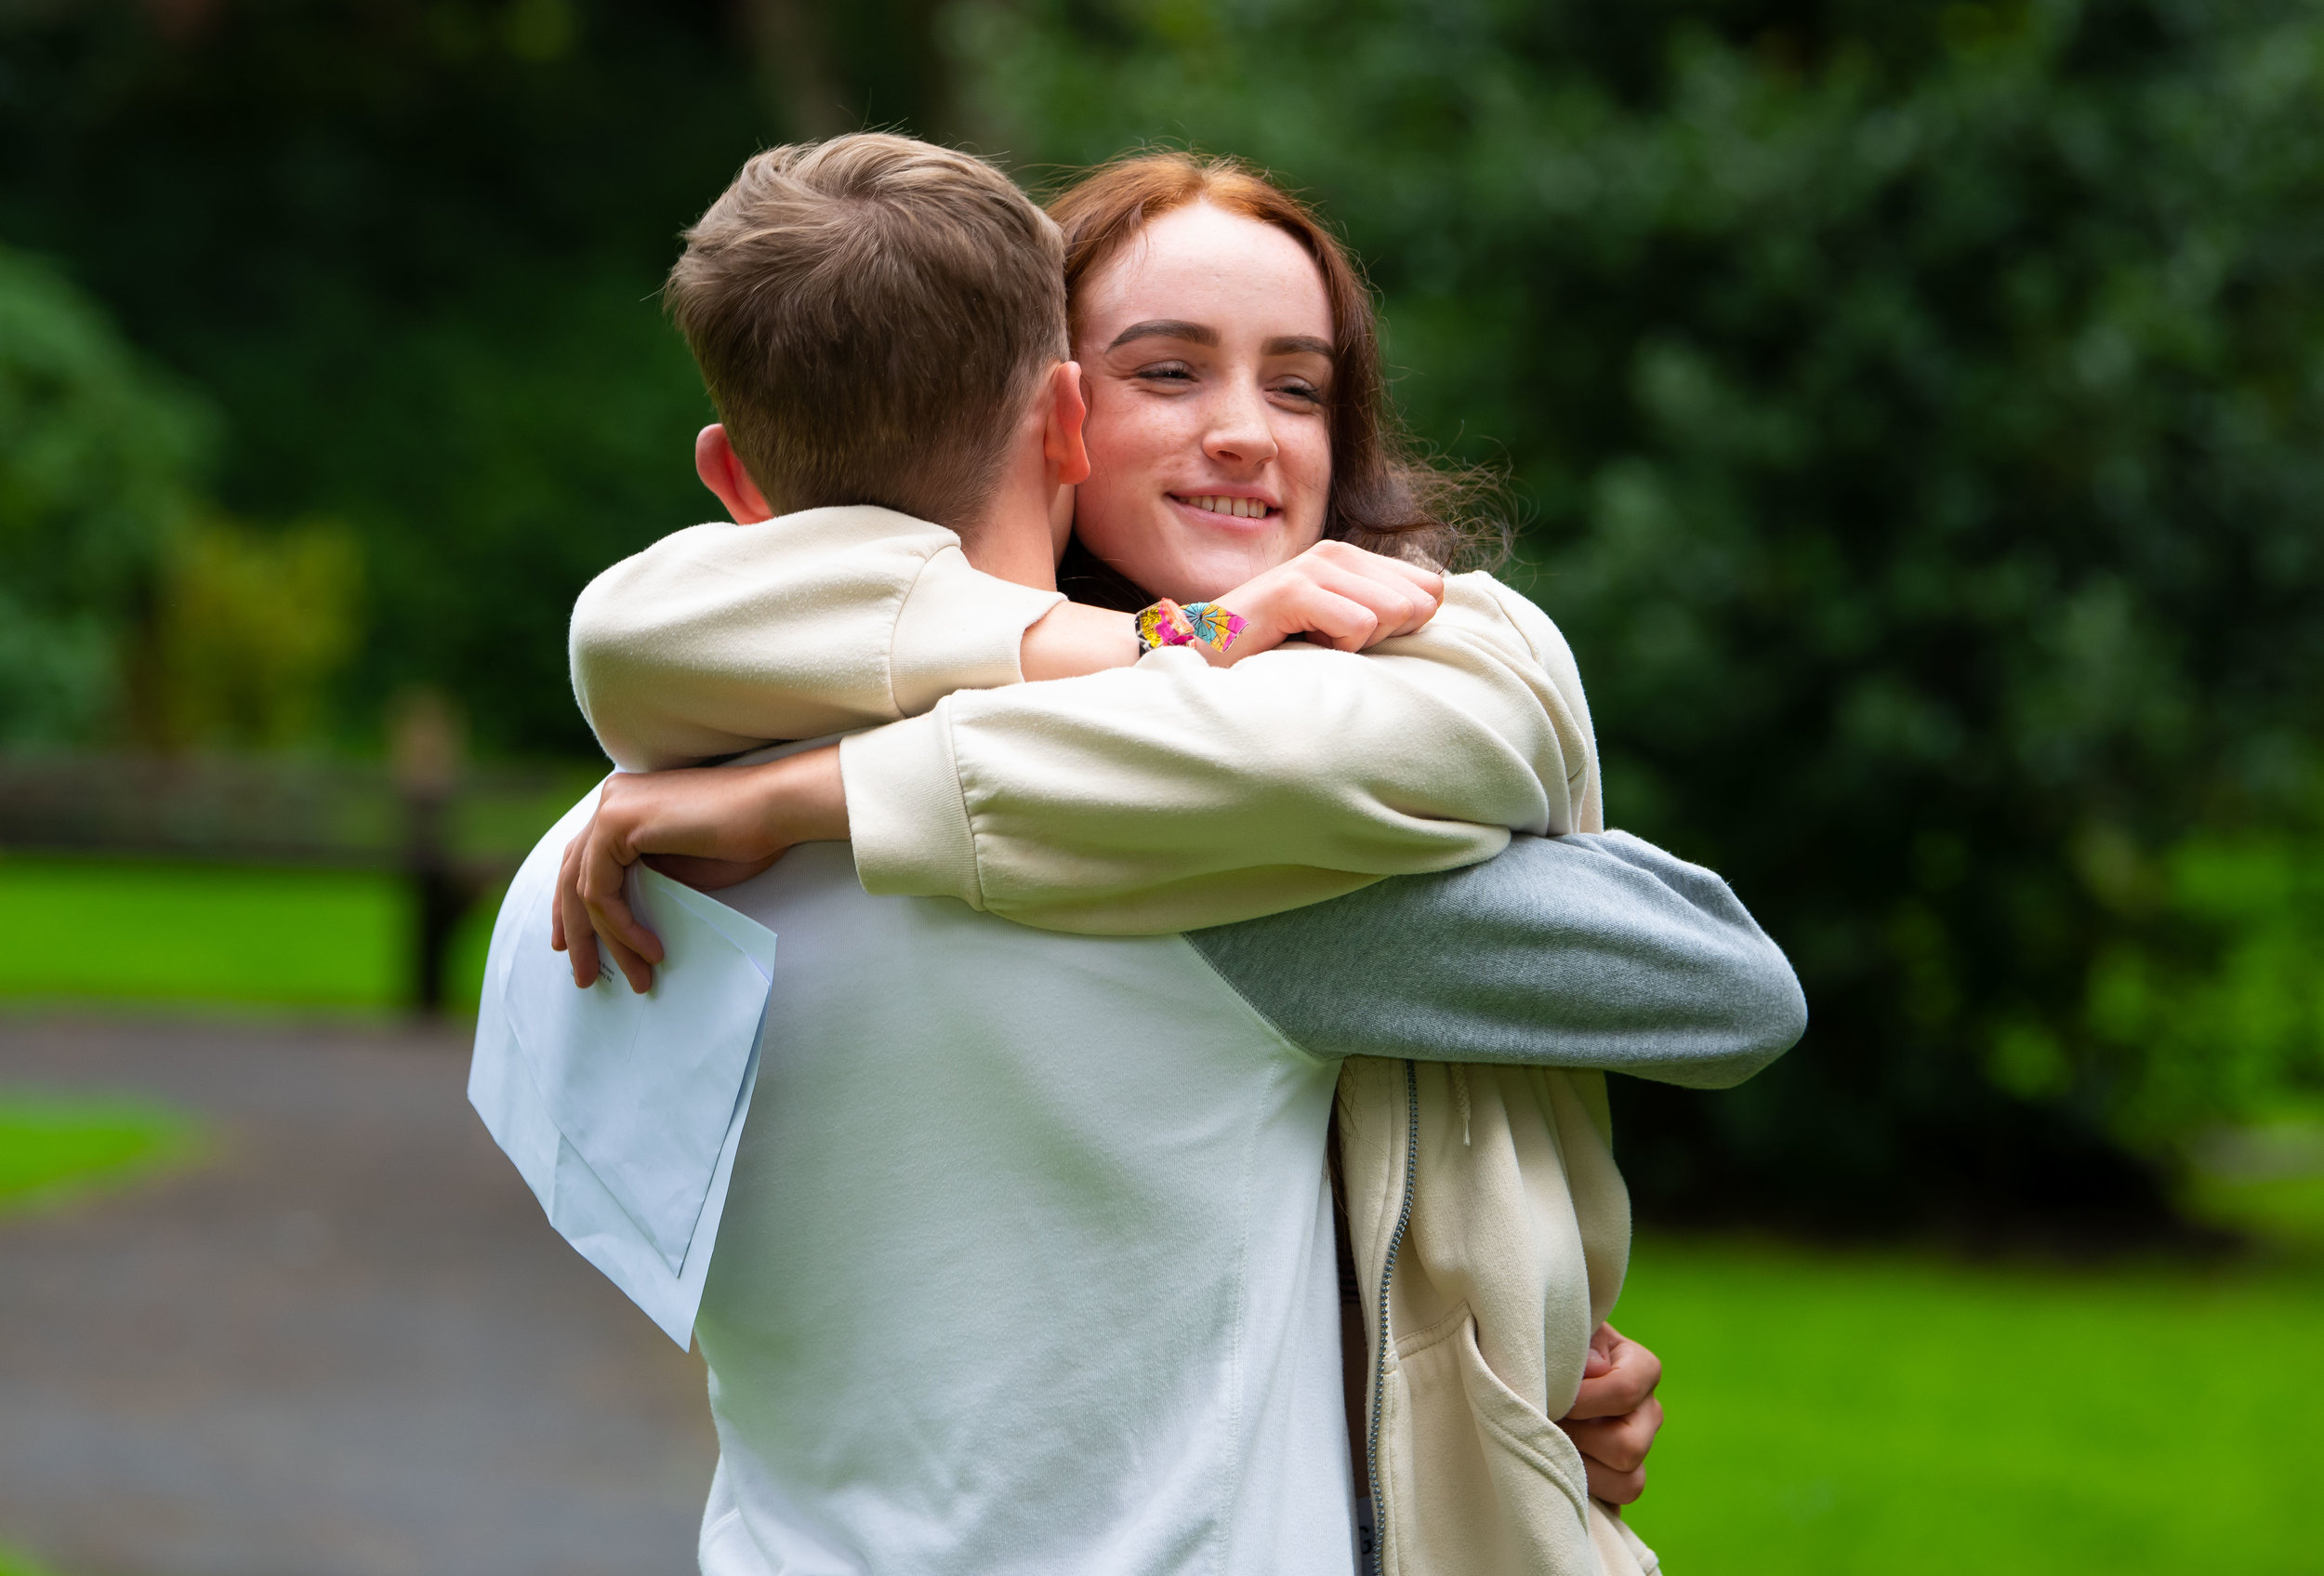 SWANSEA, UNITED KINGDOM - AUGUST 16: 